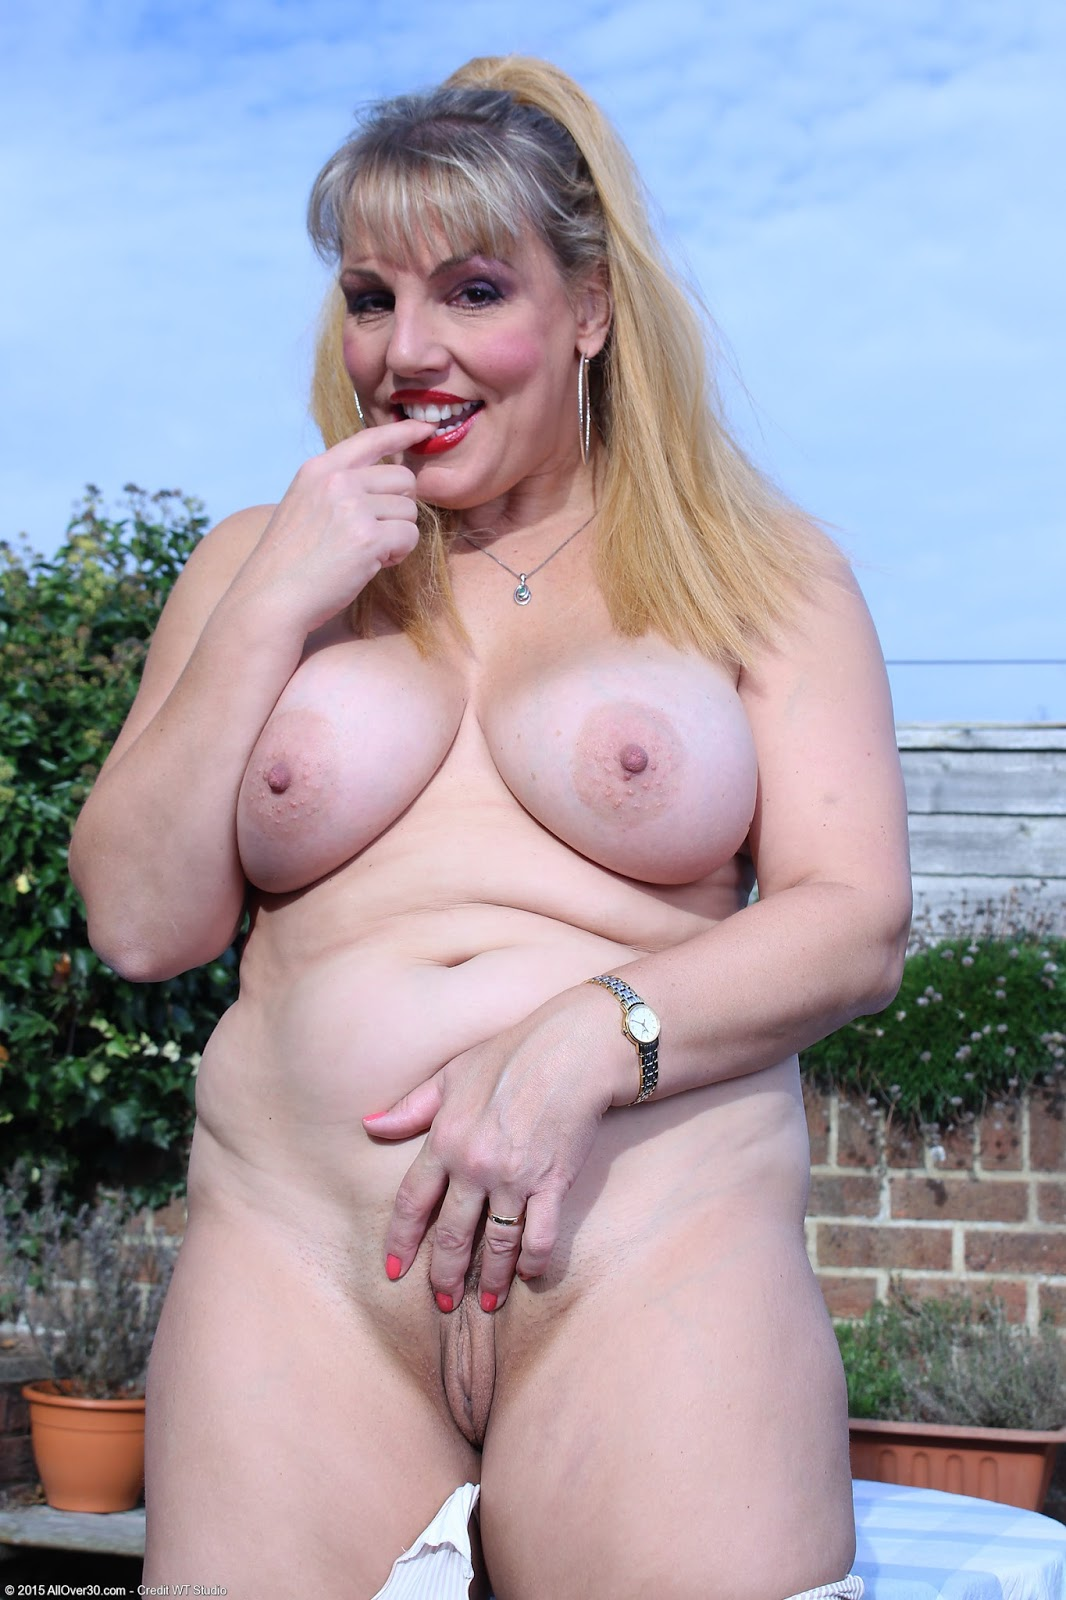 Old granny bbw crazy gypsy - 2 part 9